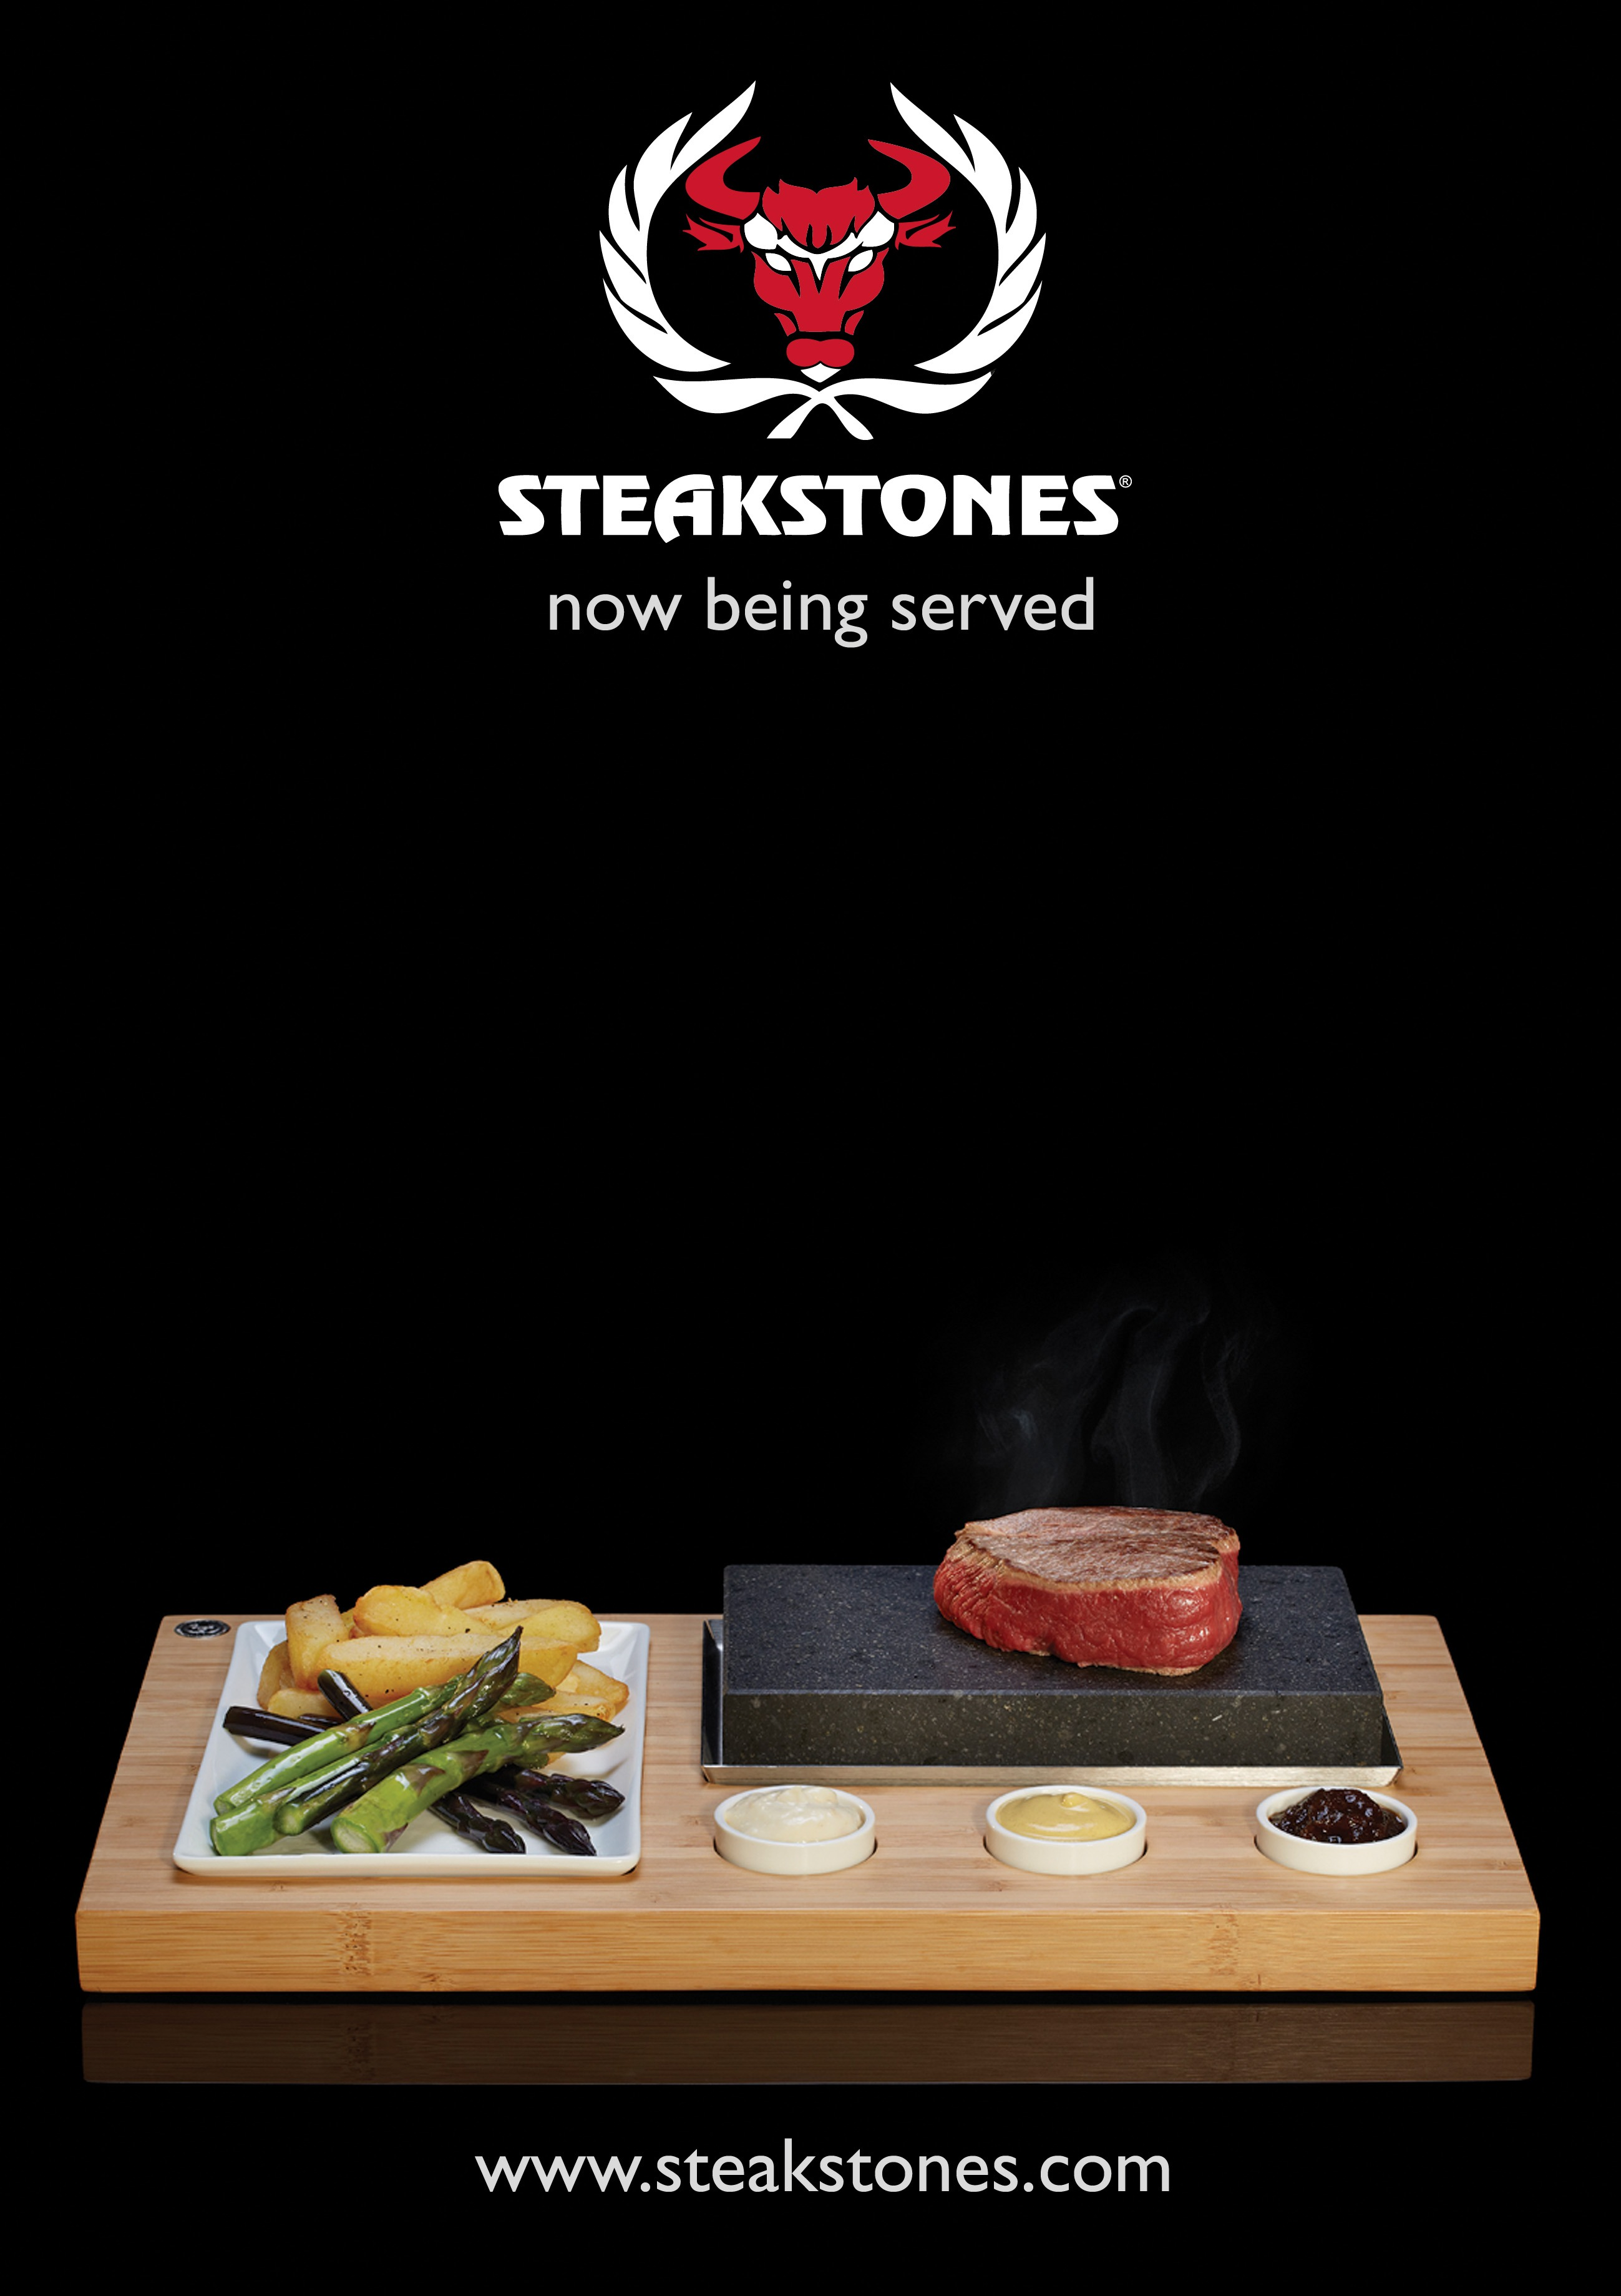 Steakstones A4 Poster